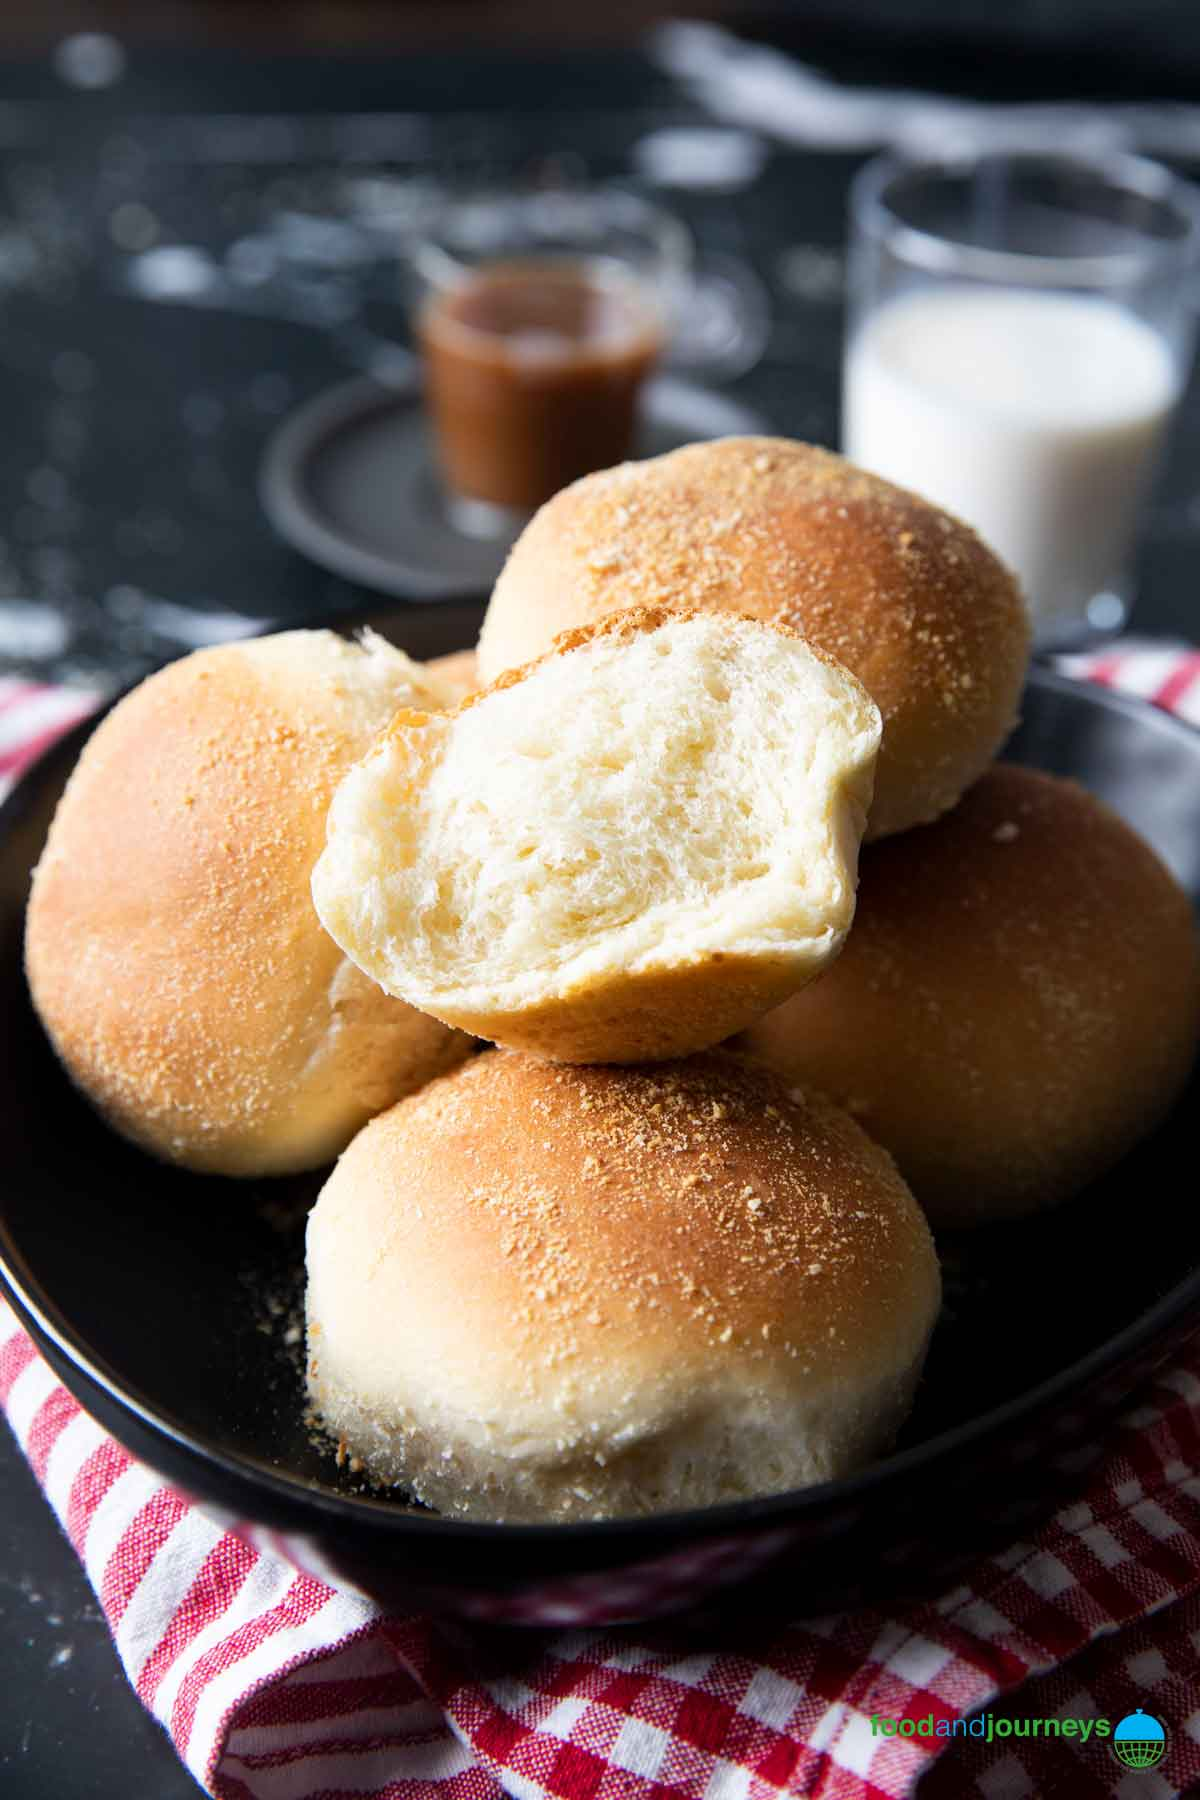 A closer shot of a plate of pandesal, highlighting the soft texture inside the bread roll.